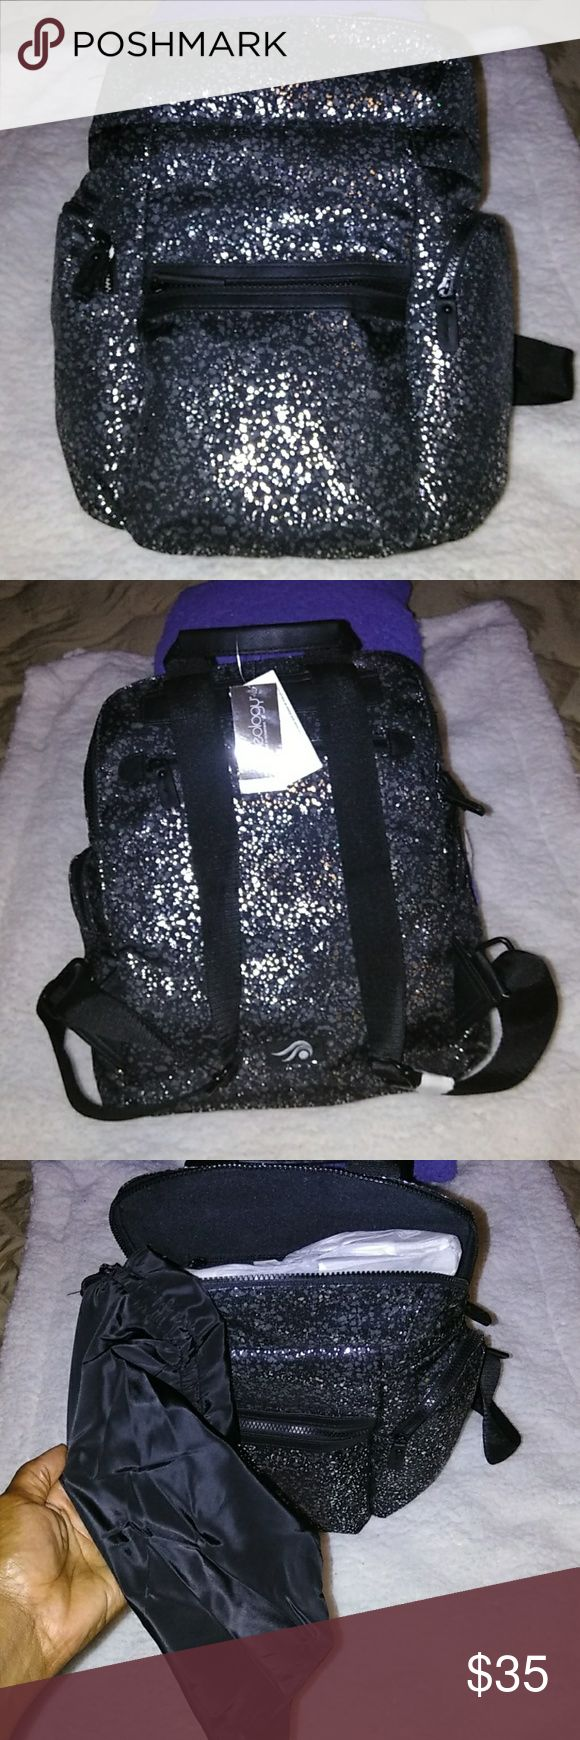 IDEOLOGY CUTE BACKPACK 😍 Perfect, black and silver backpack, front zip pocket, 2 side zip pockets for water bottle, Bonus drawstring shoe pouch for shoes, inside zip pocket, inside 2 slit pocket for cell phone, back zip pocket.  Bundle and Save! $3.99 shipping for the first Shopper! Free gift with any Purchase! Ideology Bags Backpacks